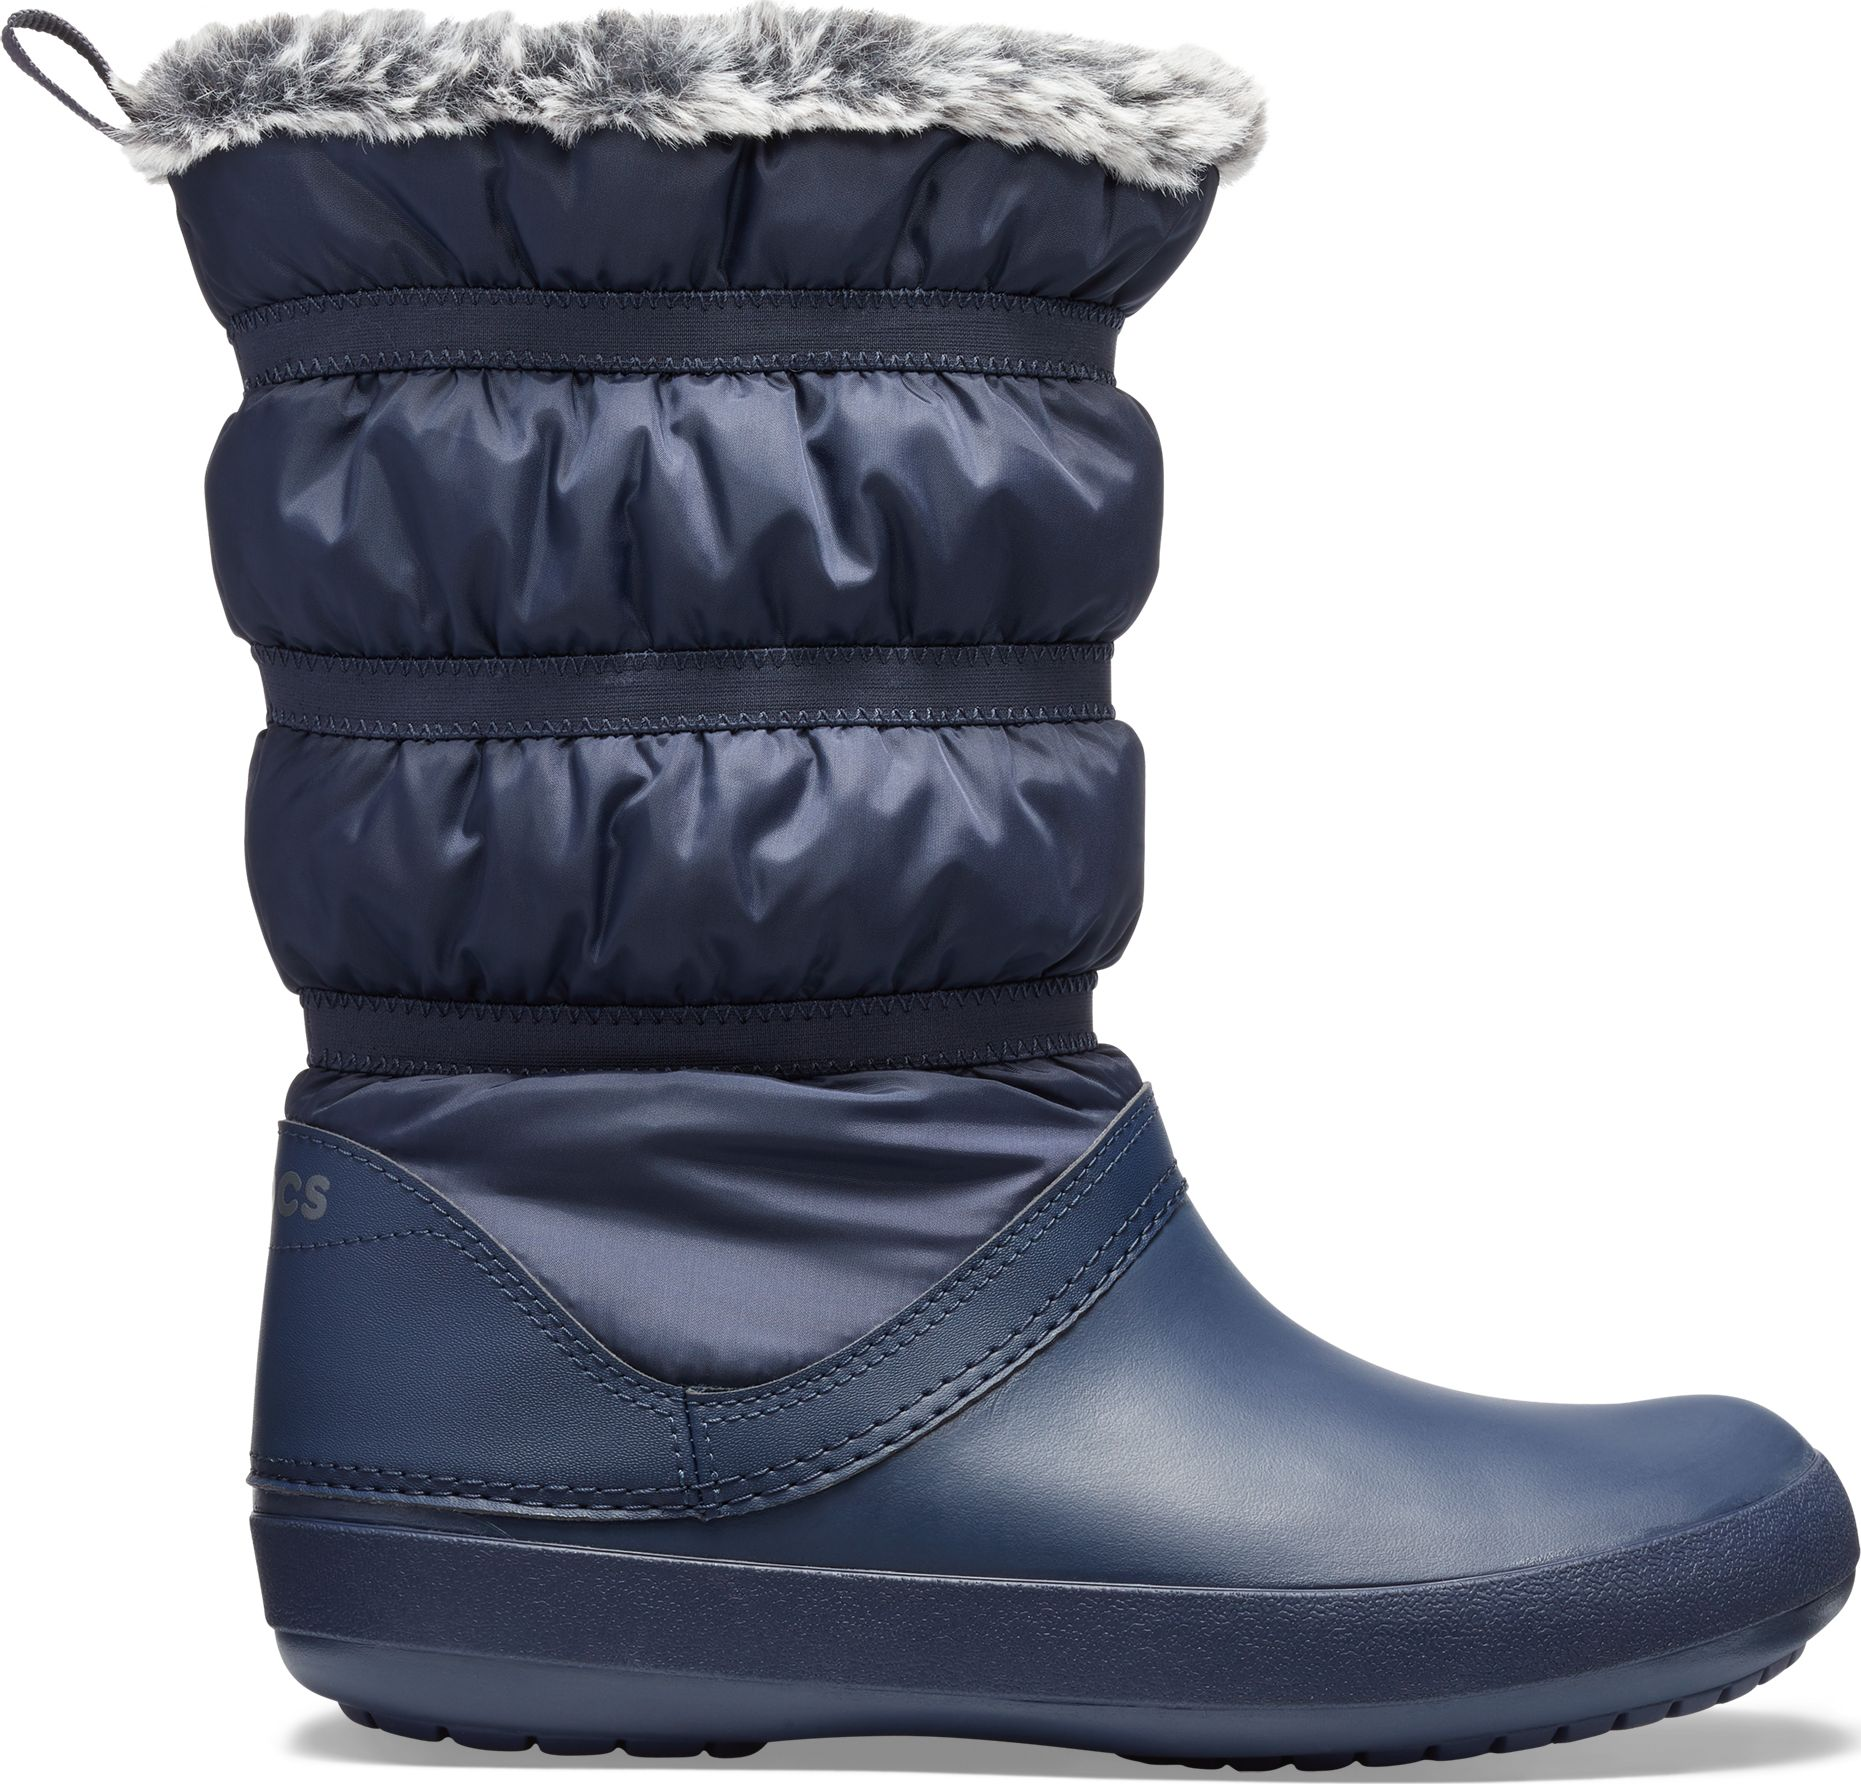 Crocs™ Women's Crocband Winter Boot Navy 37,5